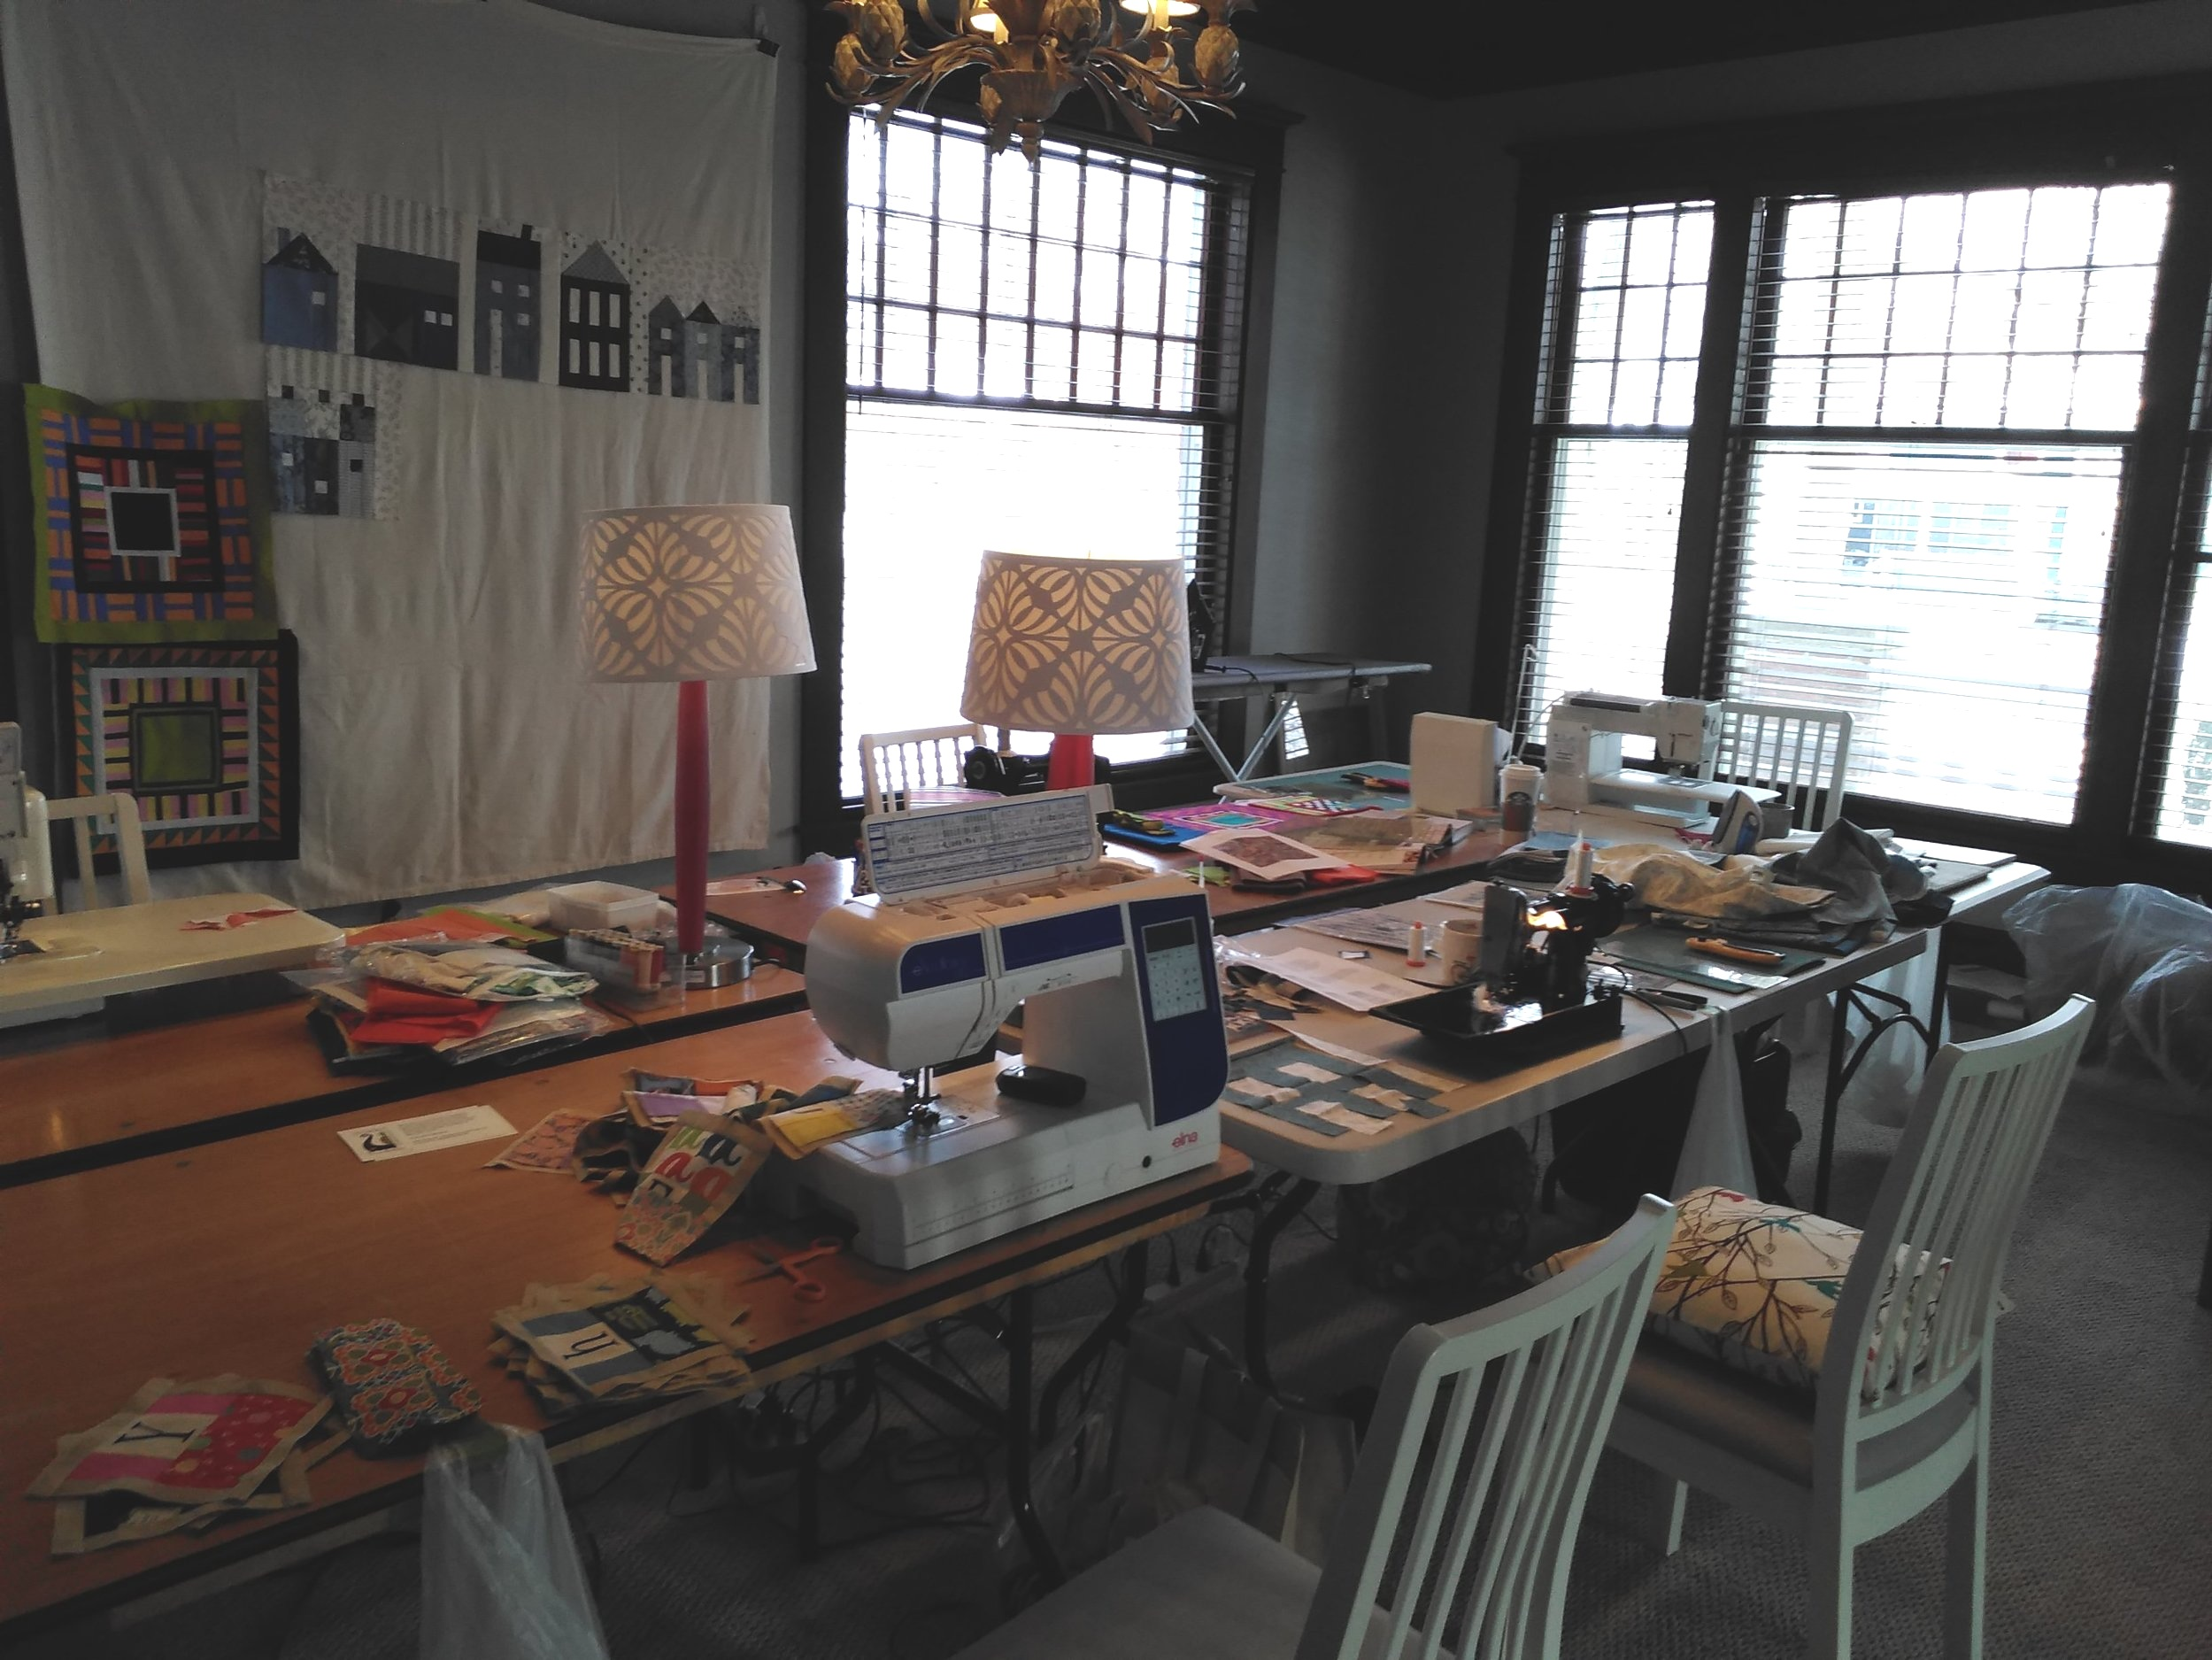 """alt=""""Tables set up for quilting.  With lamps and sewing machines"""""""